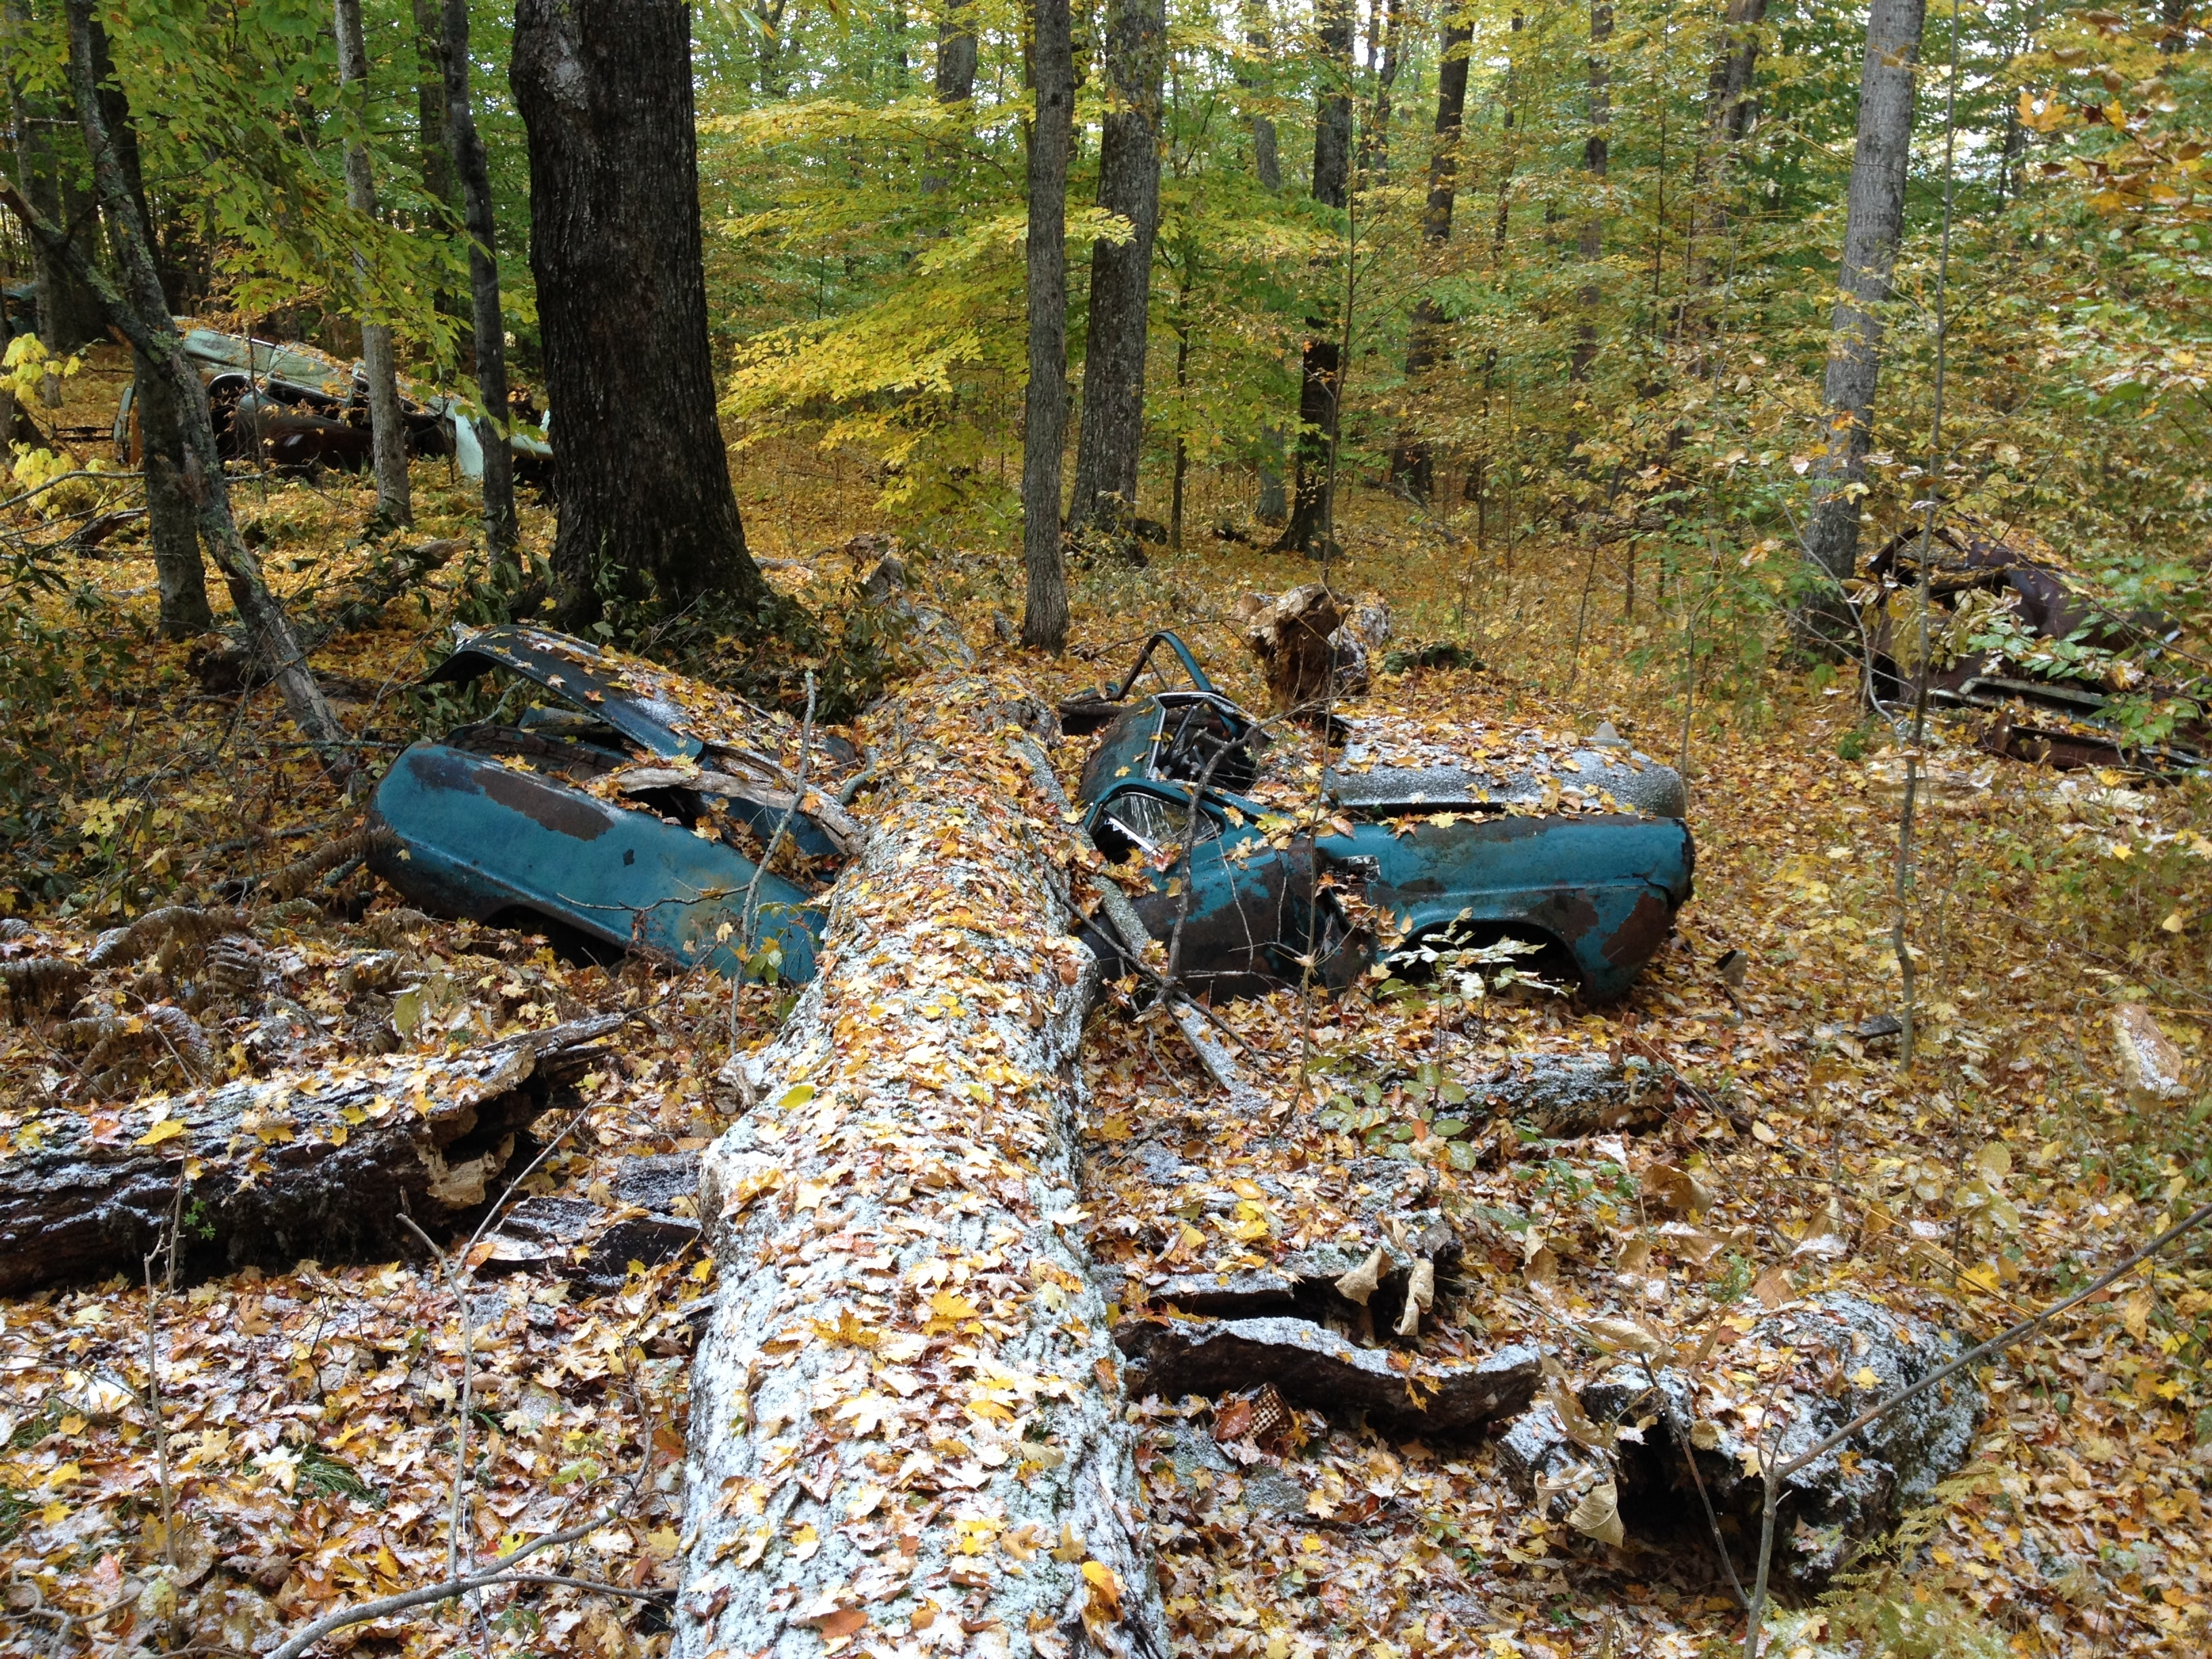 blue vehicle topped by rotting tree taken at daytime